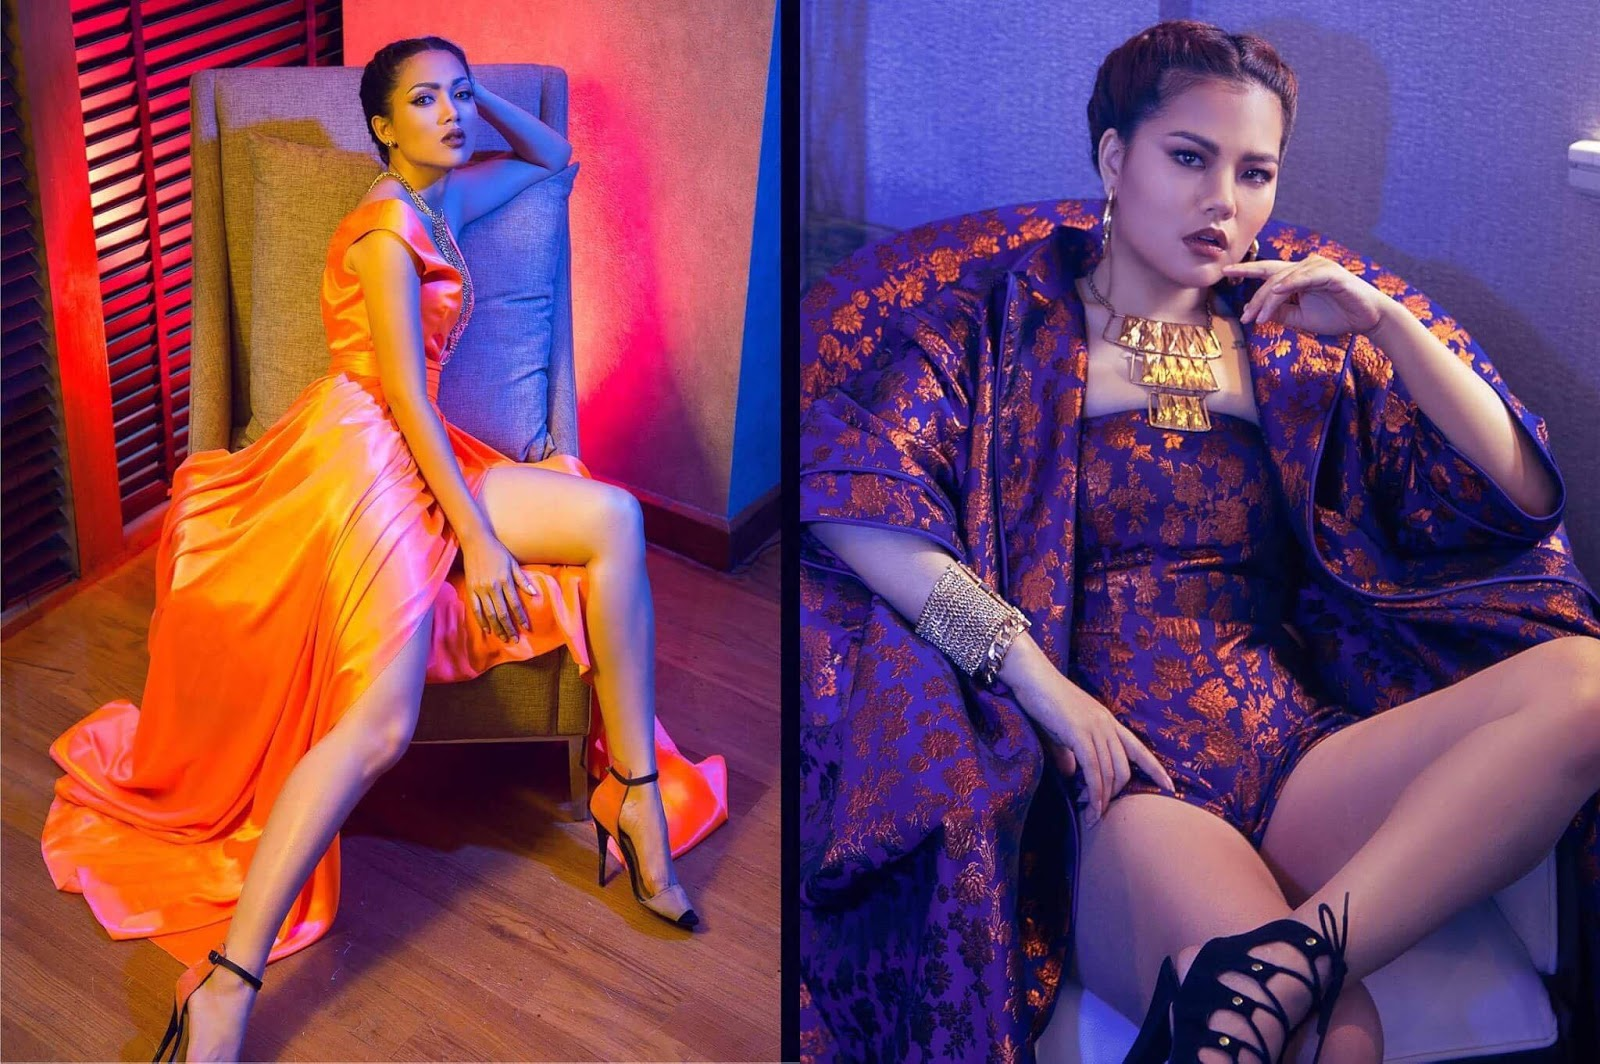 Thinzar Wint Kyaw , Aye Myat Thu and Sandi Myint Lwin Features Together In Moda Fashion Magazine Cover